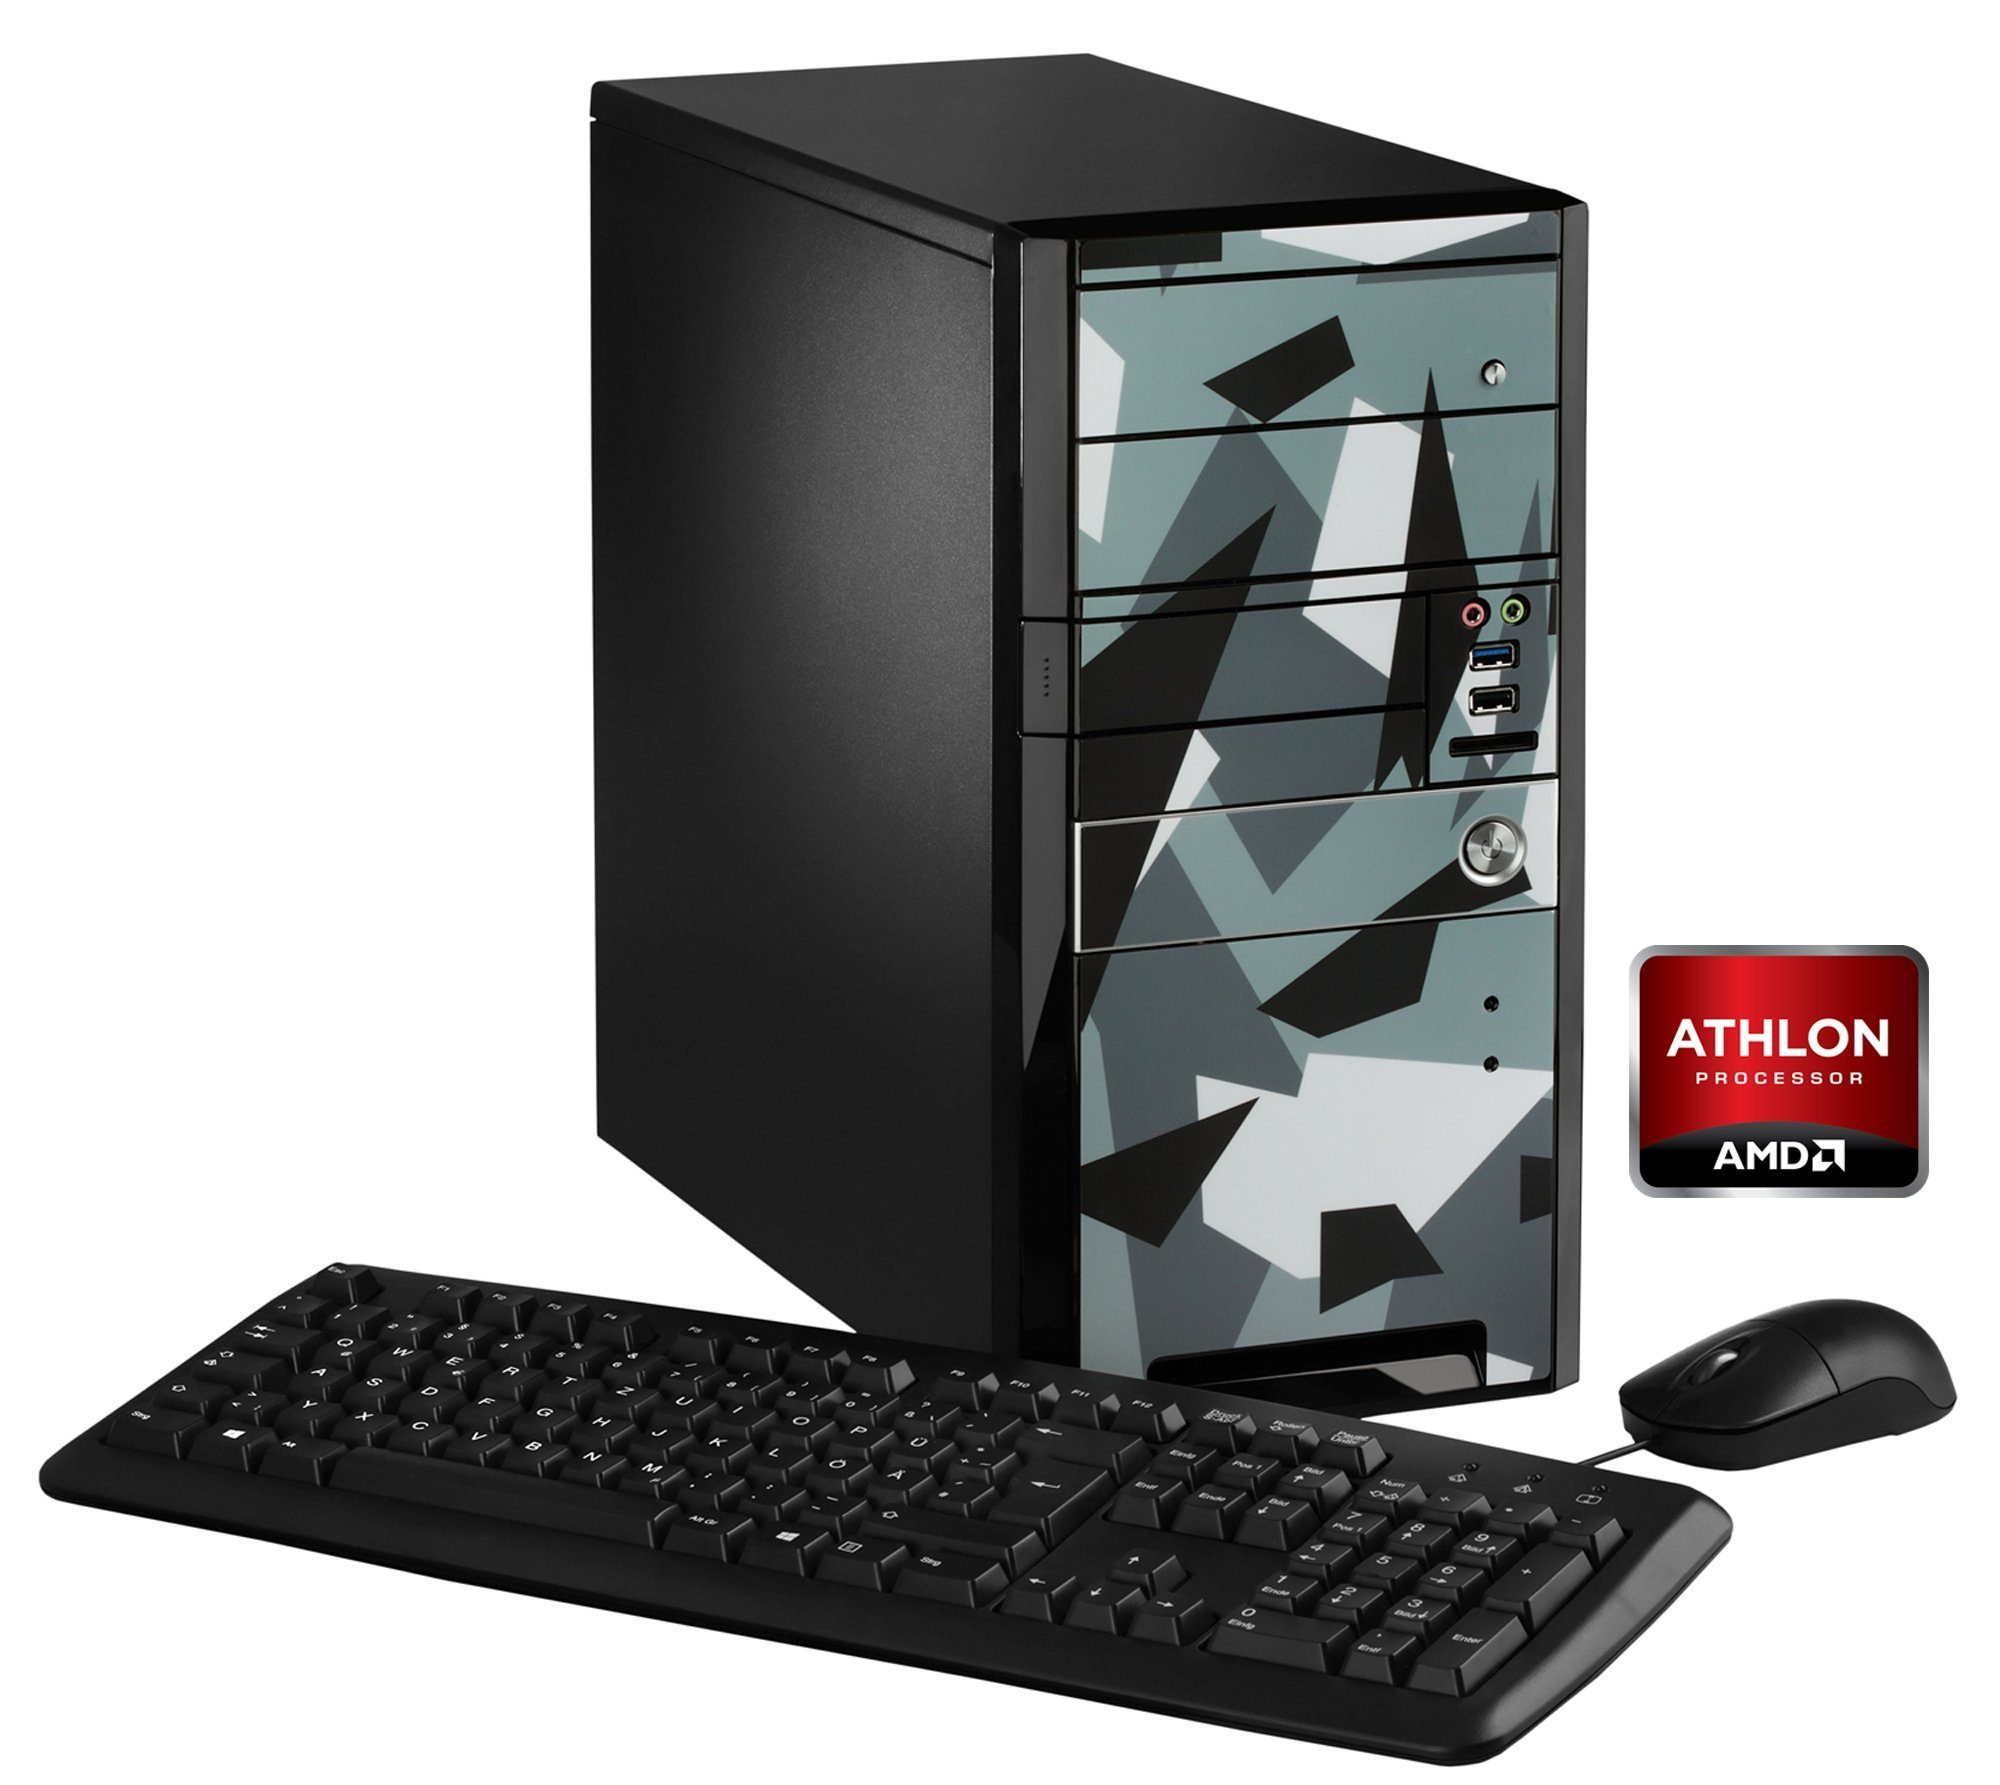 Hyrican PC AMD Athlon X4 880K, 16GB, SSD + HDD, AMD RX470 »Limited Edition - Ice 5285 «